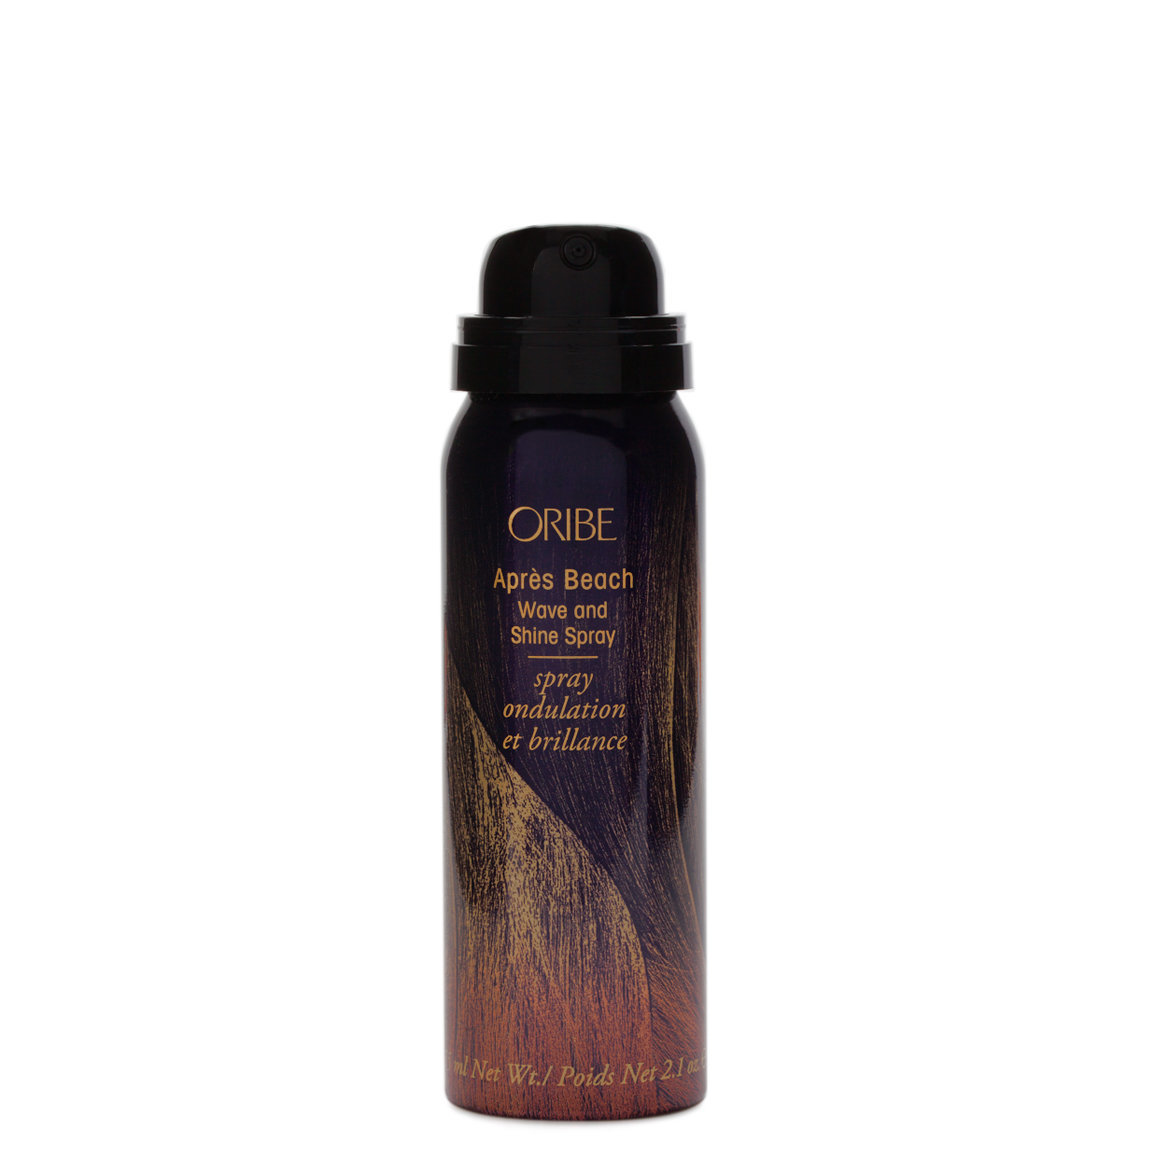 Oribe Après Beach Wave and Shine Spray 2.1 fl oz product smear.